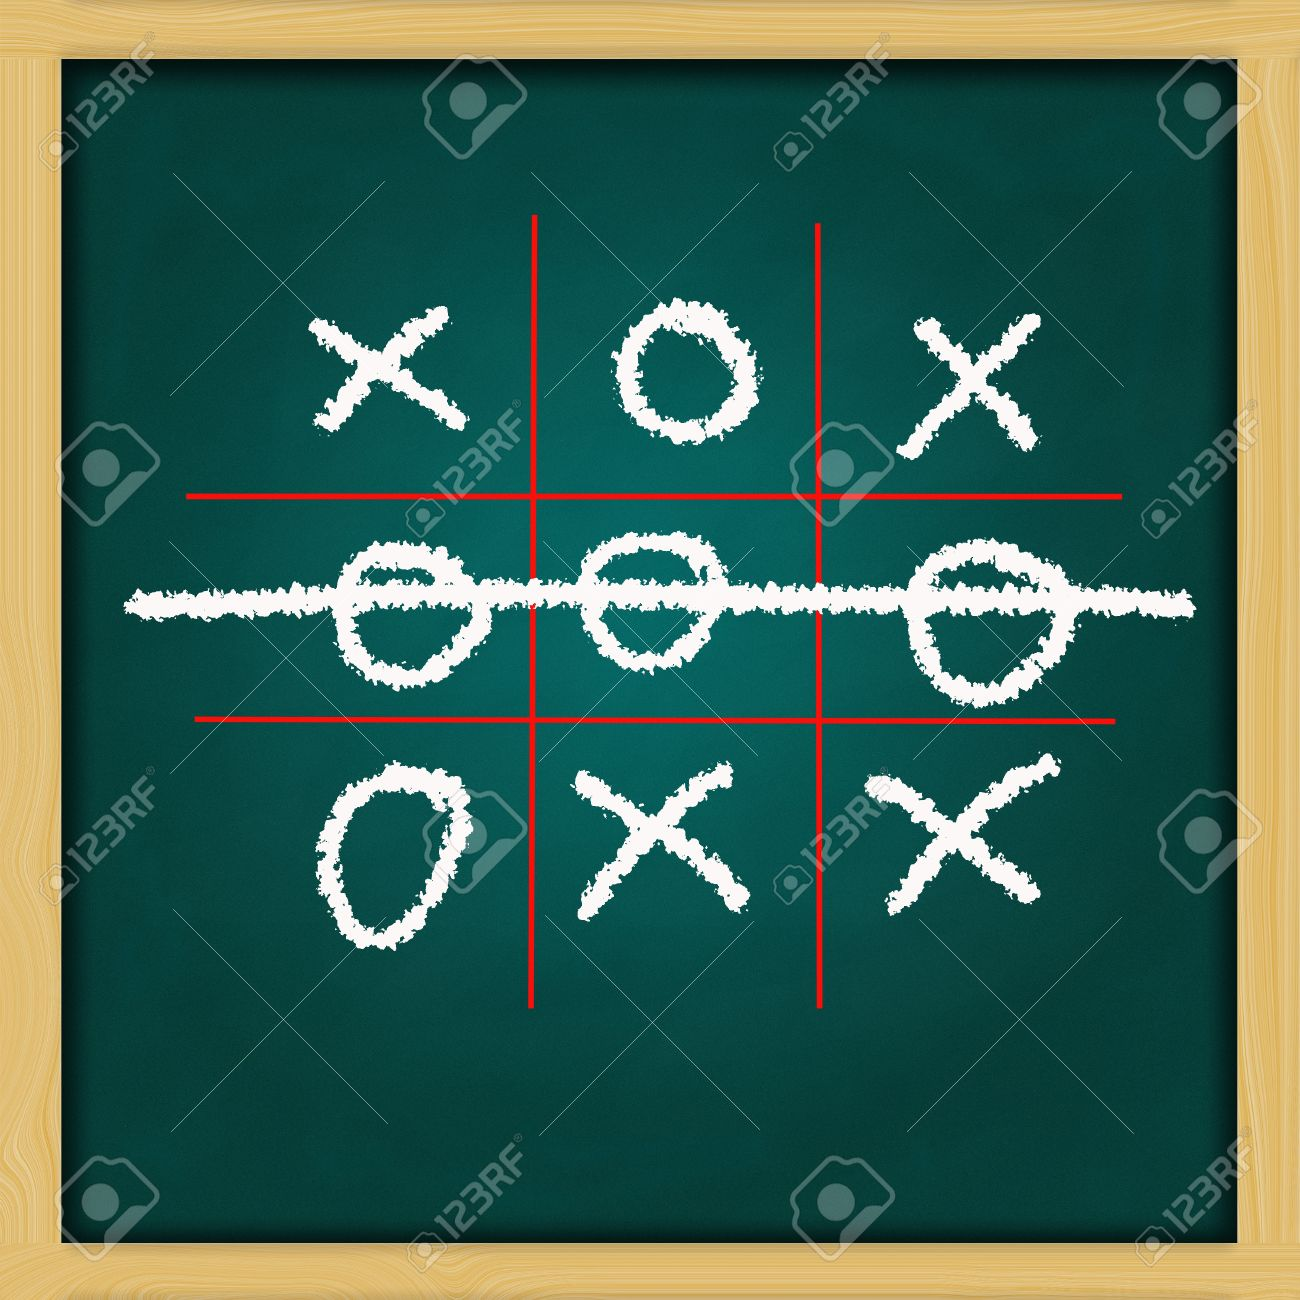 hand drawing X and O game on grunge green chalkboard Stock Photo - 14053249